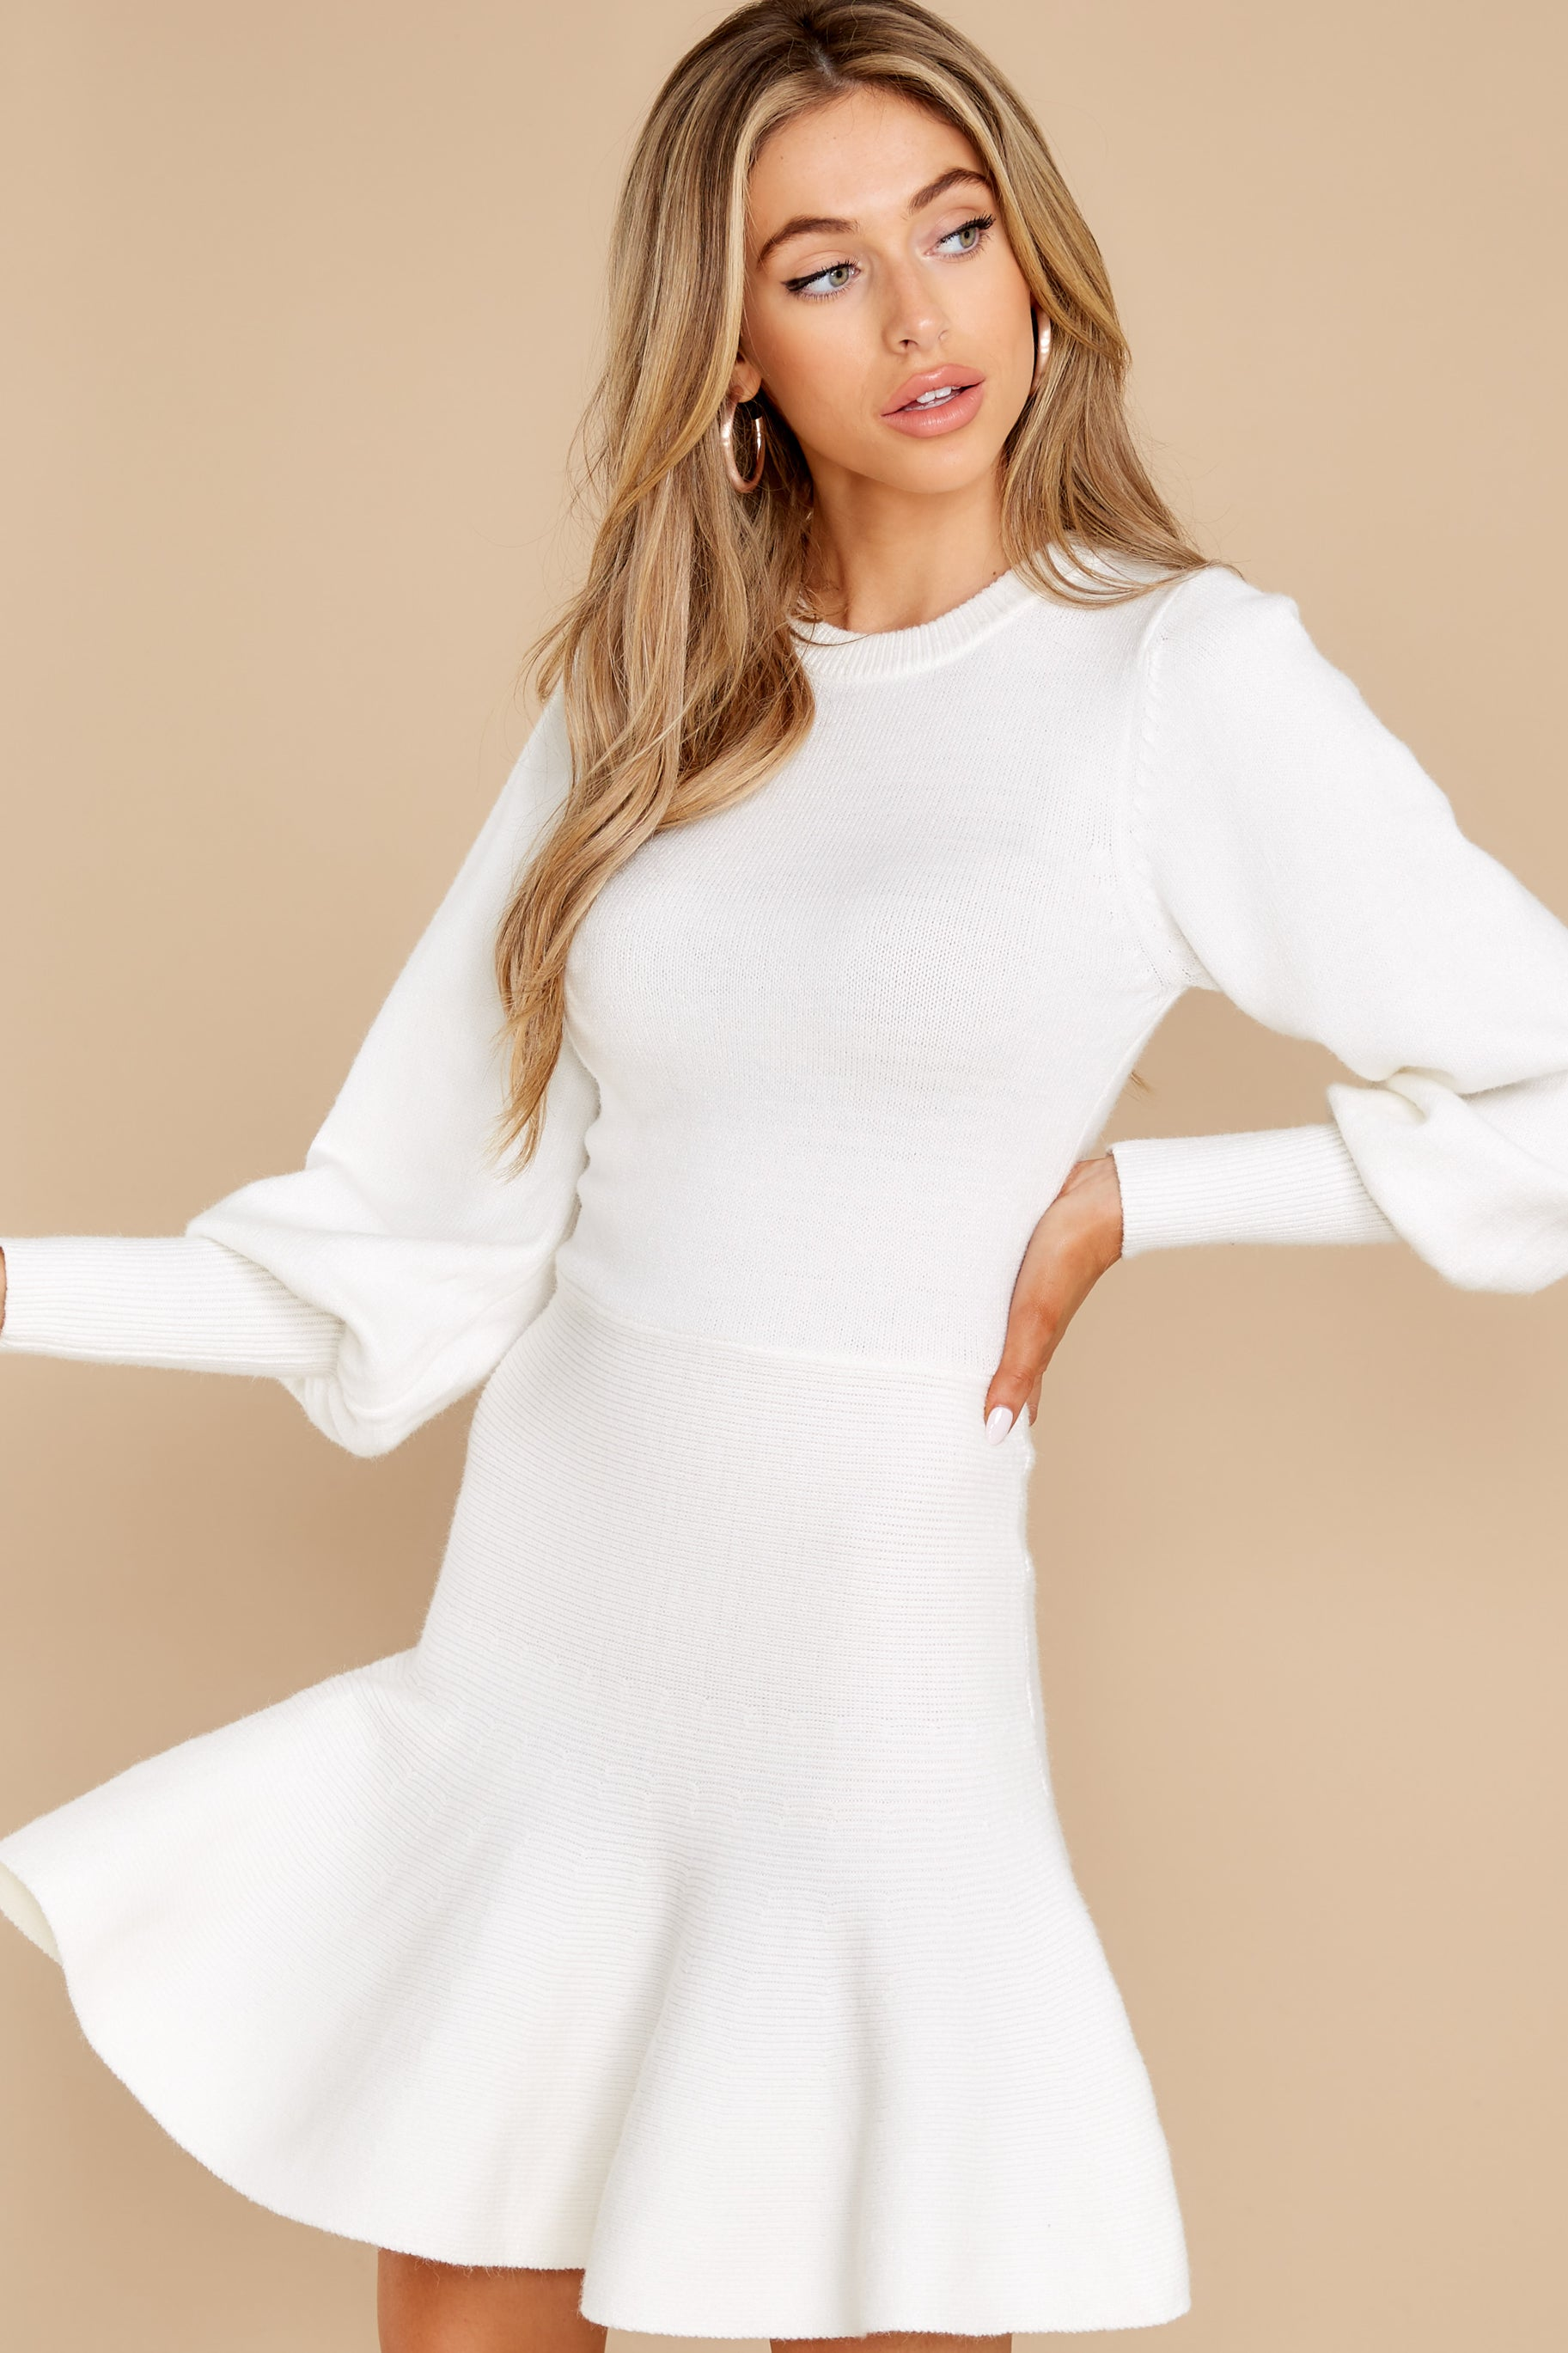 8 Into Me Into You White Sweater Dress at reddress.com